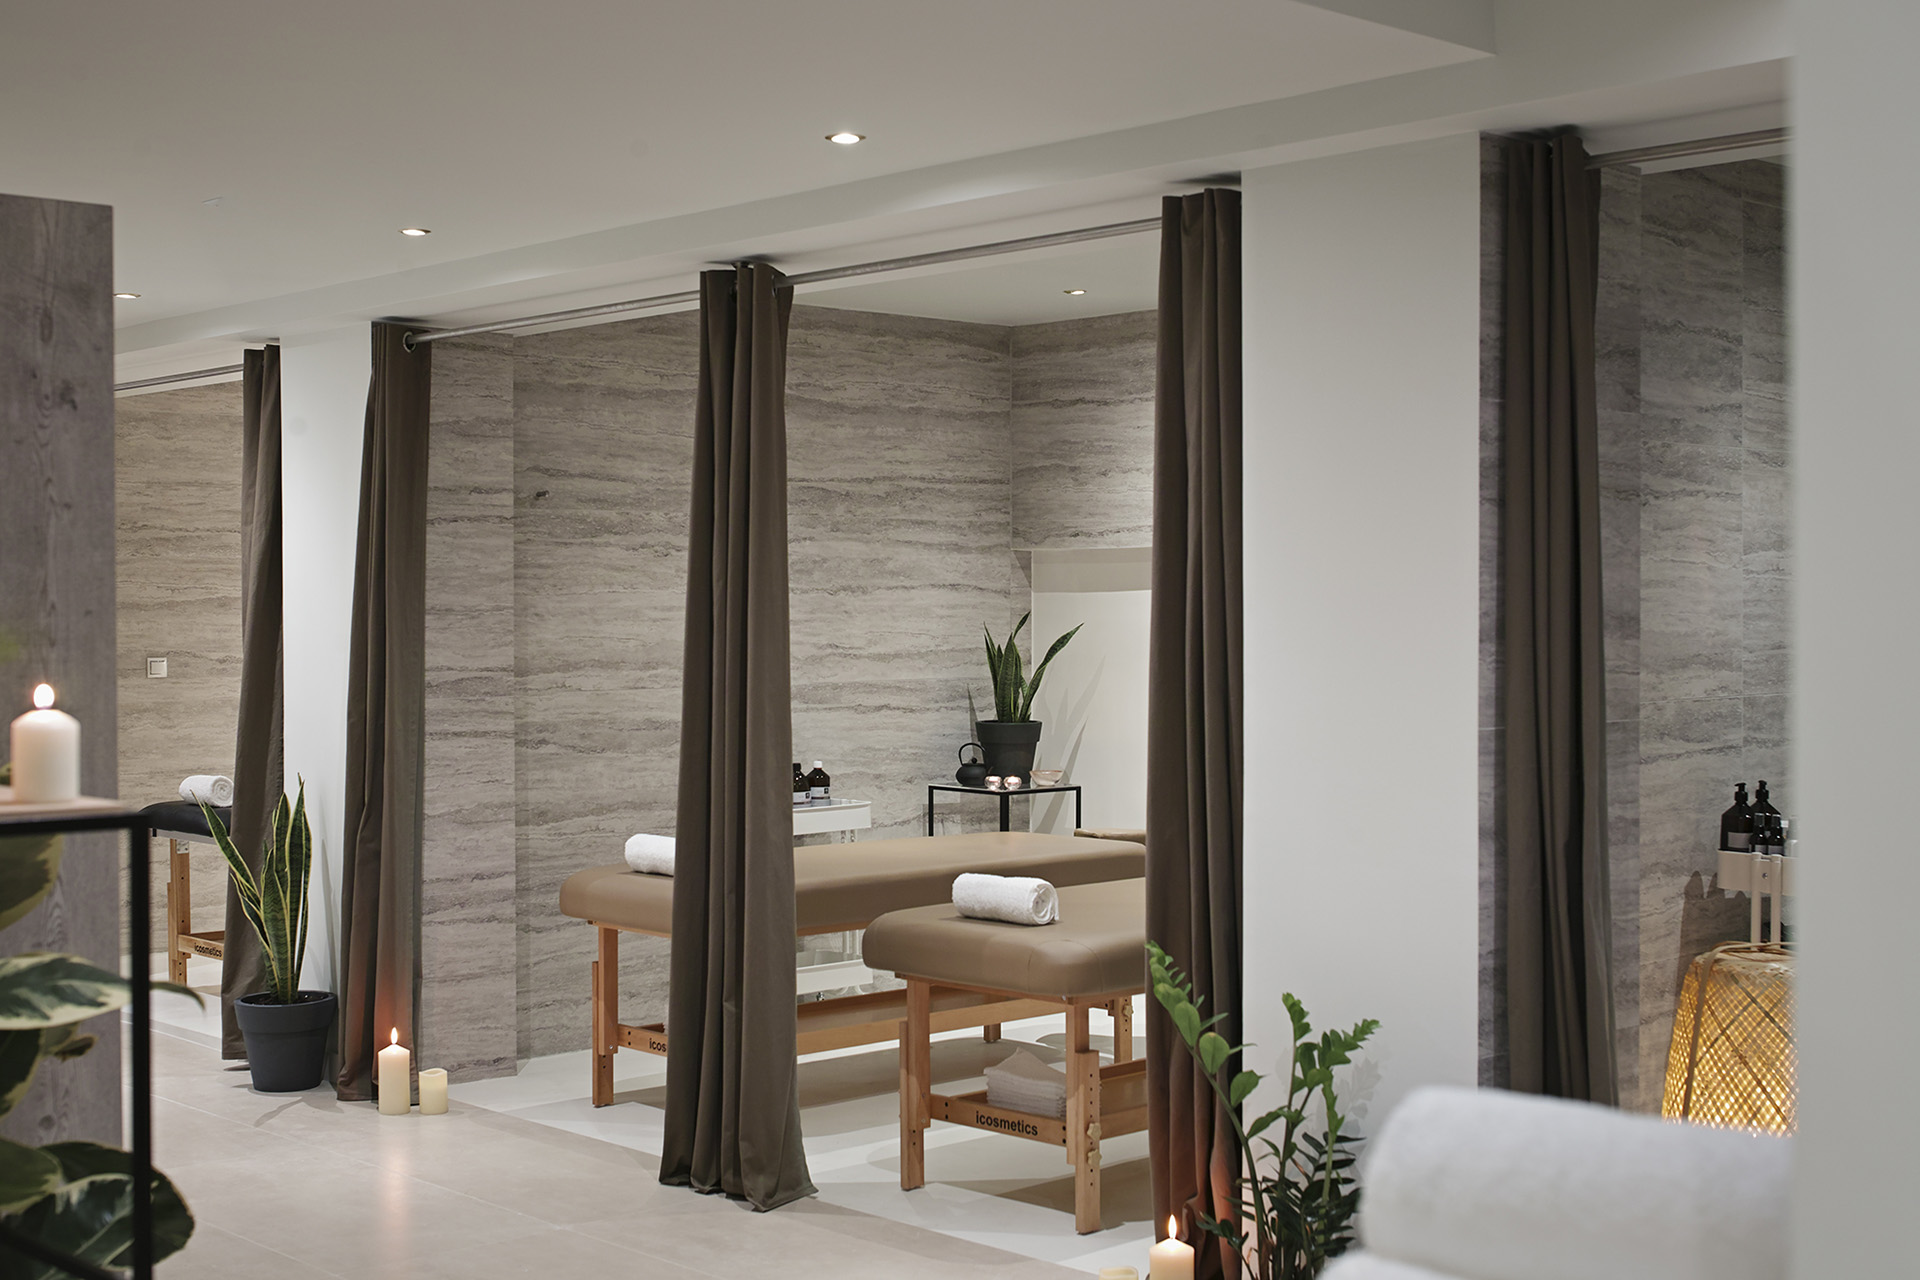 An exclusive Spa in the heart of Athens